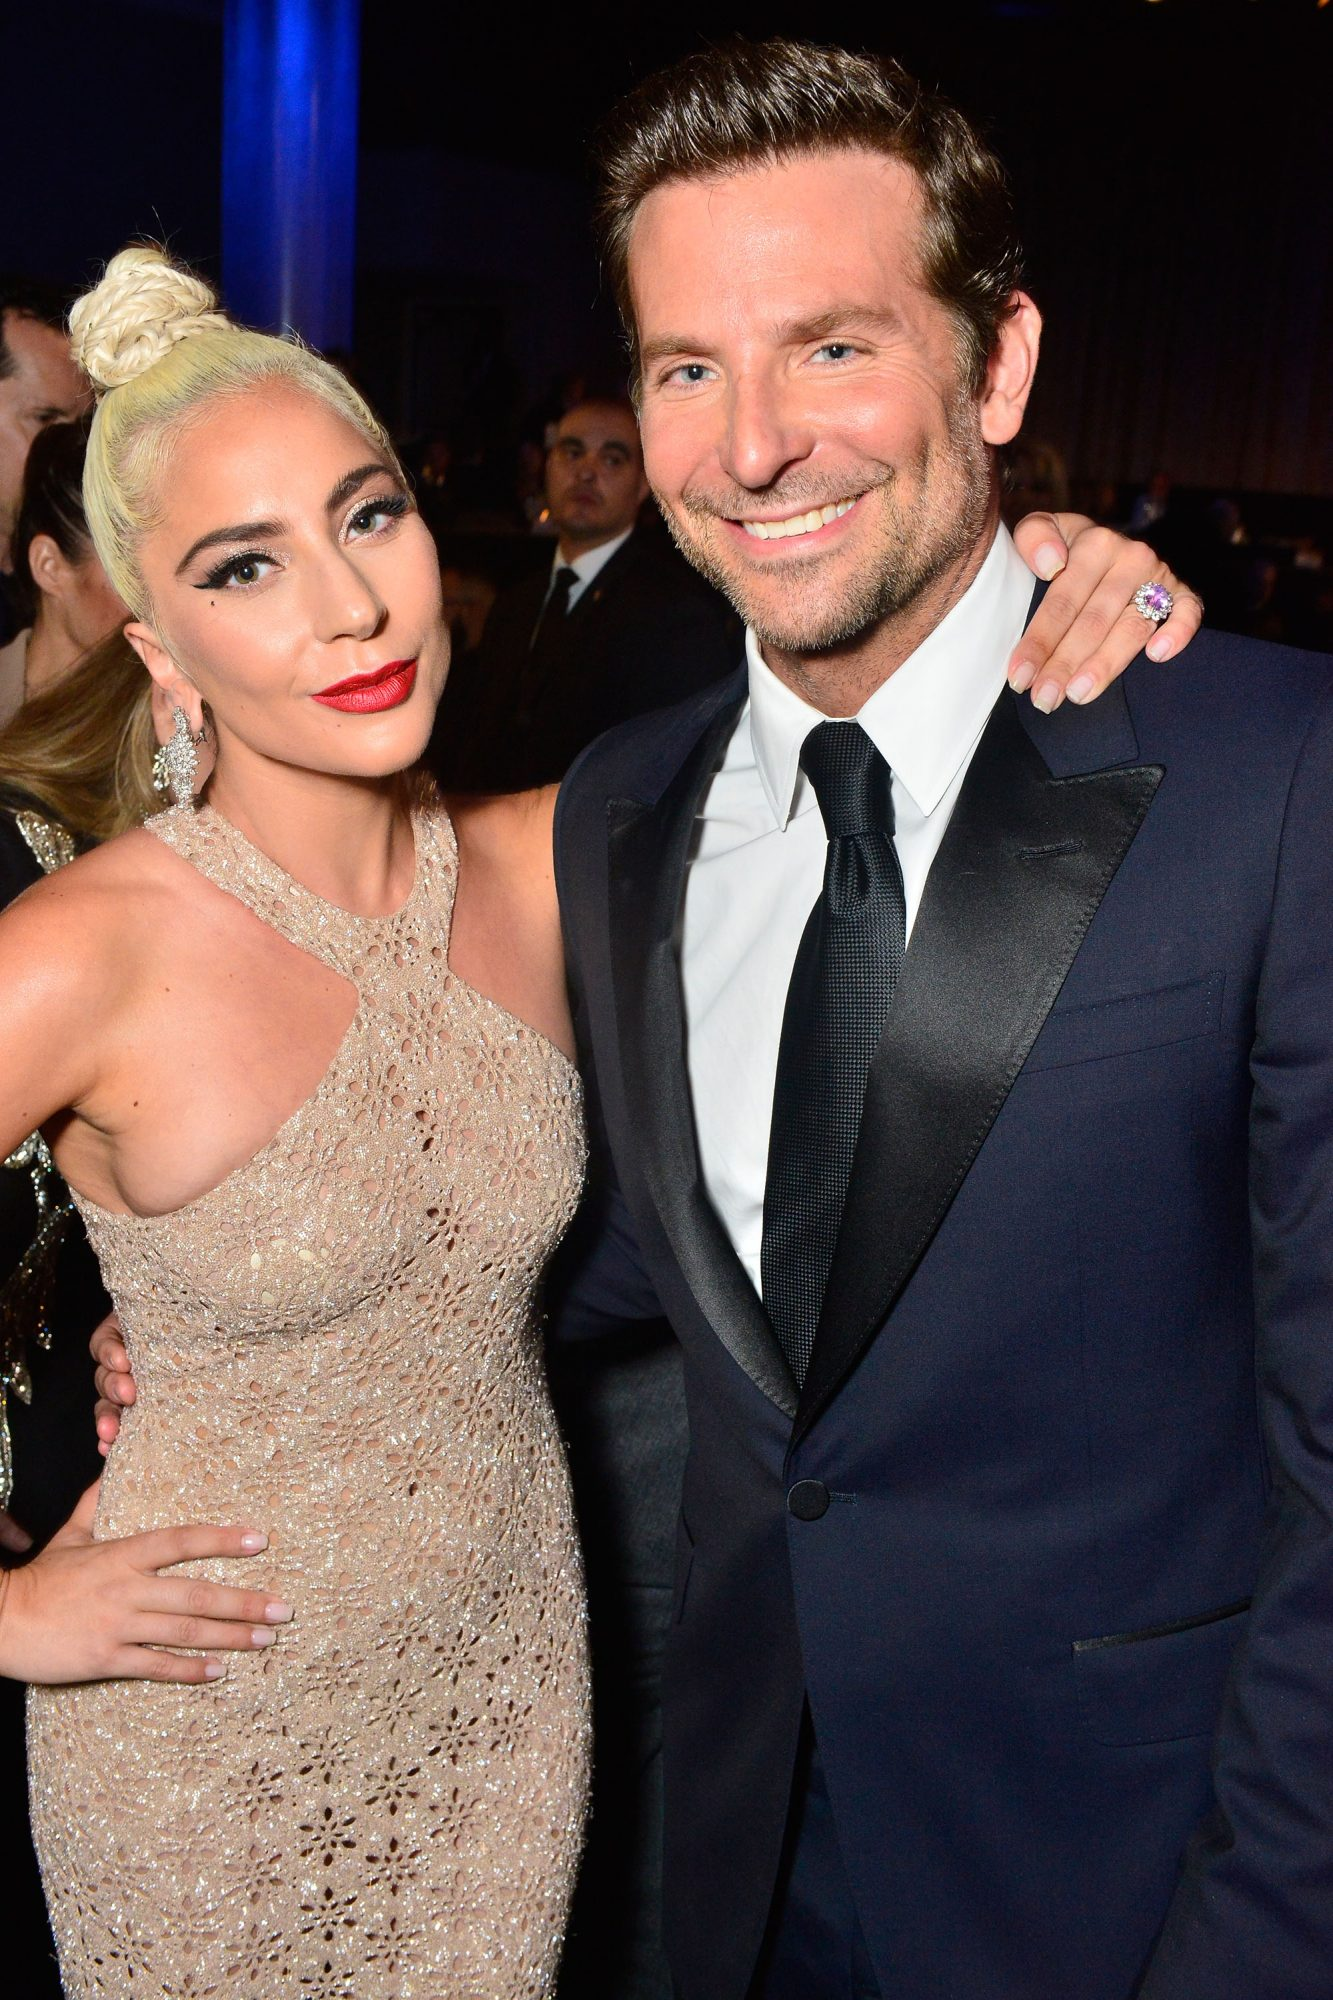 Of Course Oprah Got the Scoop on the Lady Gaga and Bradley Cooper Romance Rumors